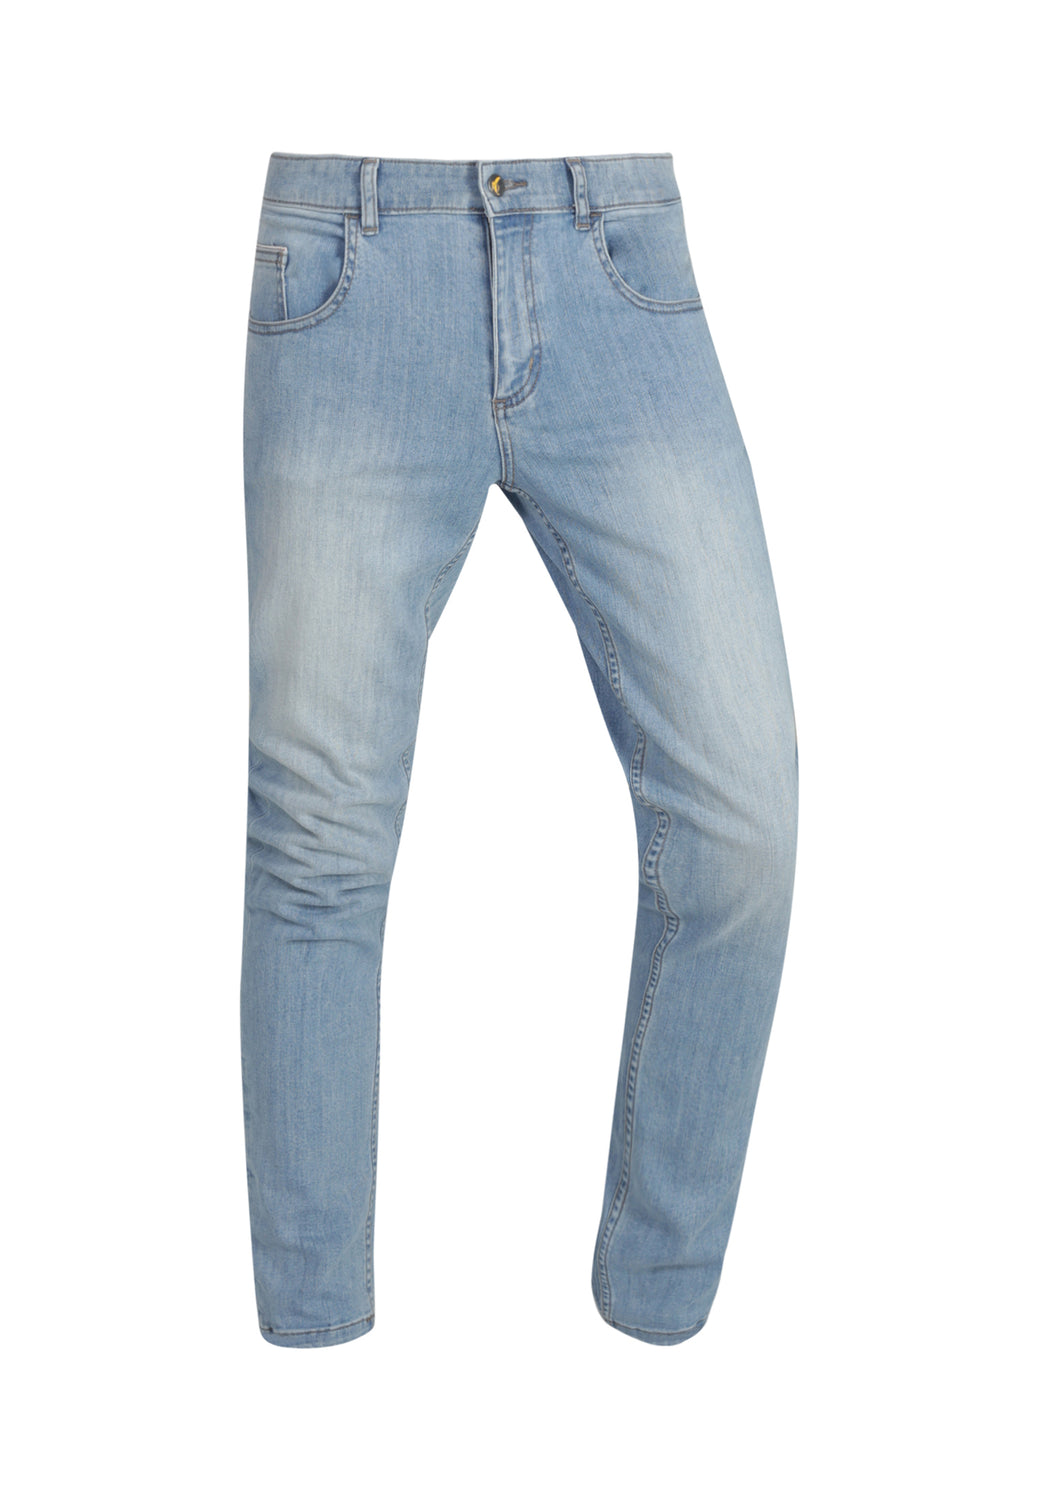 CLASSIC SKINNY // Organic Classic Skinny Jeans in Light Wash - Monkee Genes Organic Jeans Denim - Men's Classic Skinny Monkee Genes Official  Monkee Genes Official